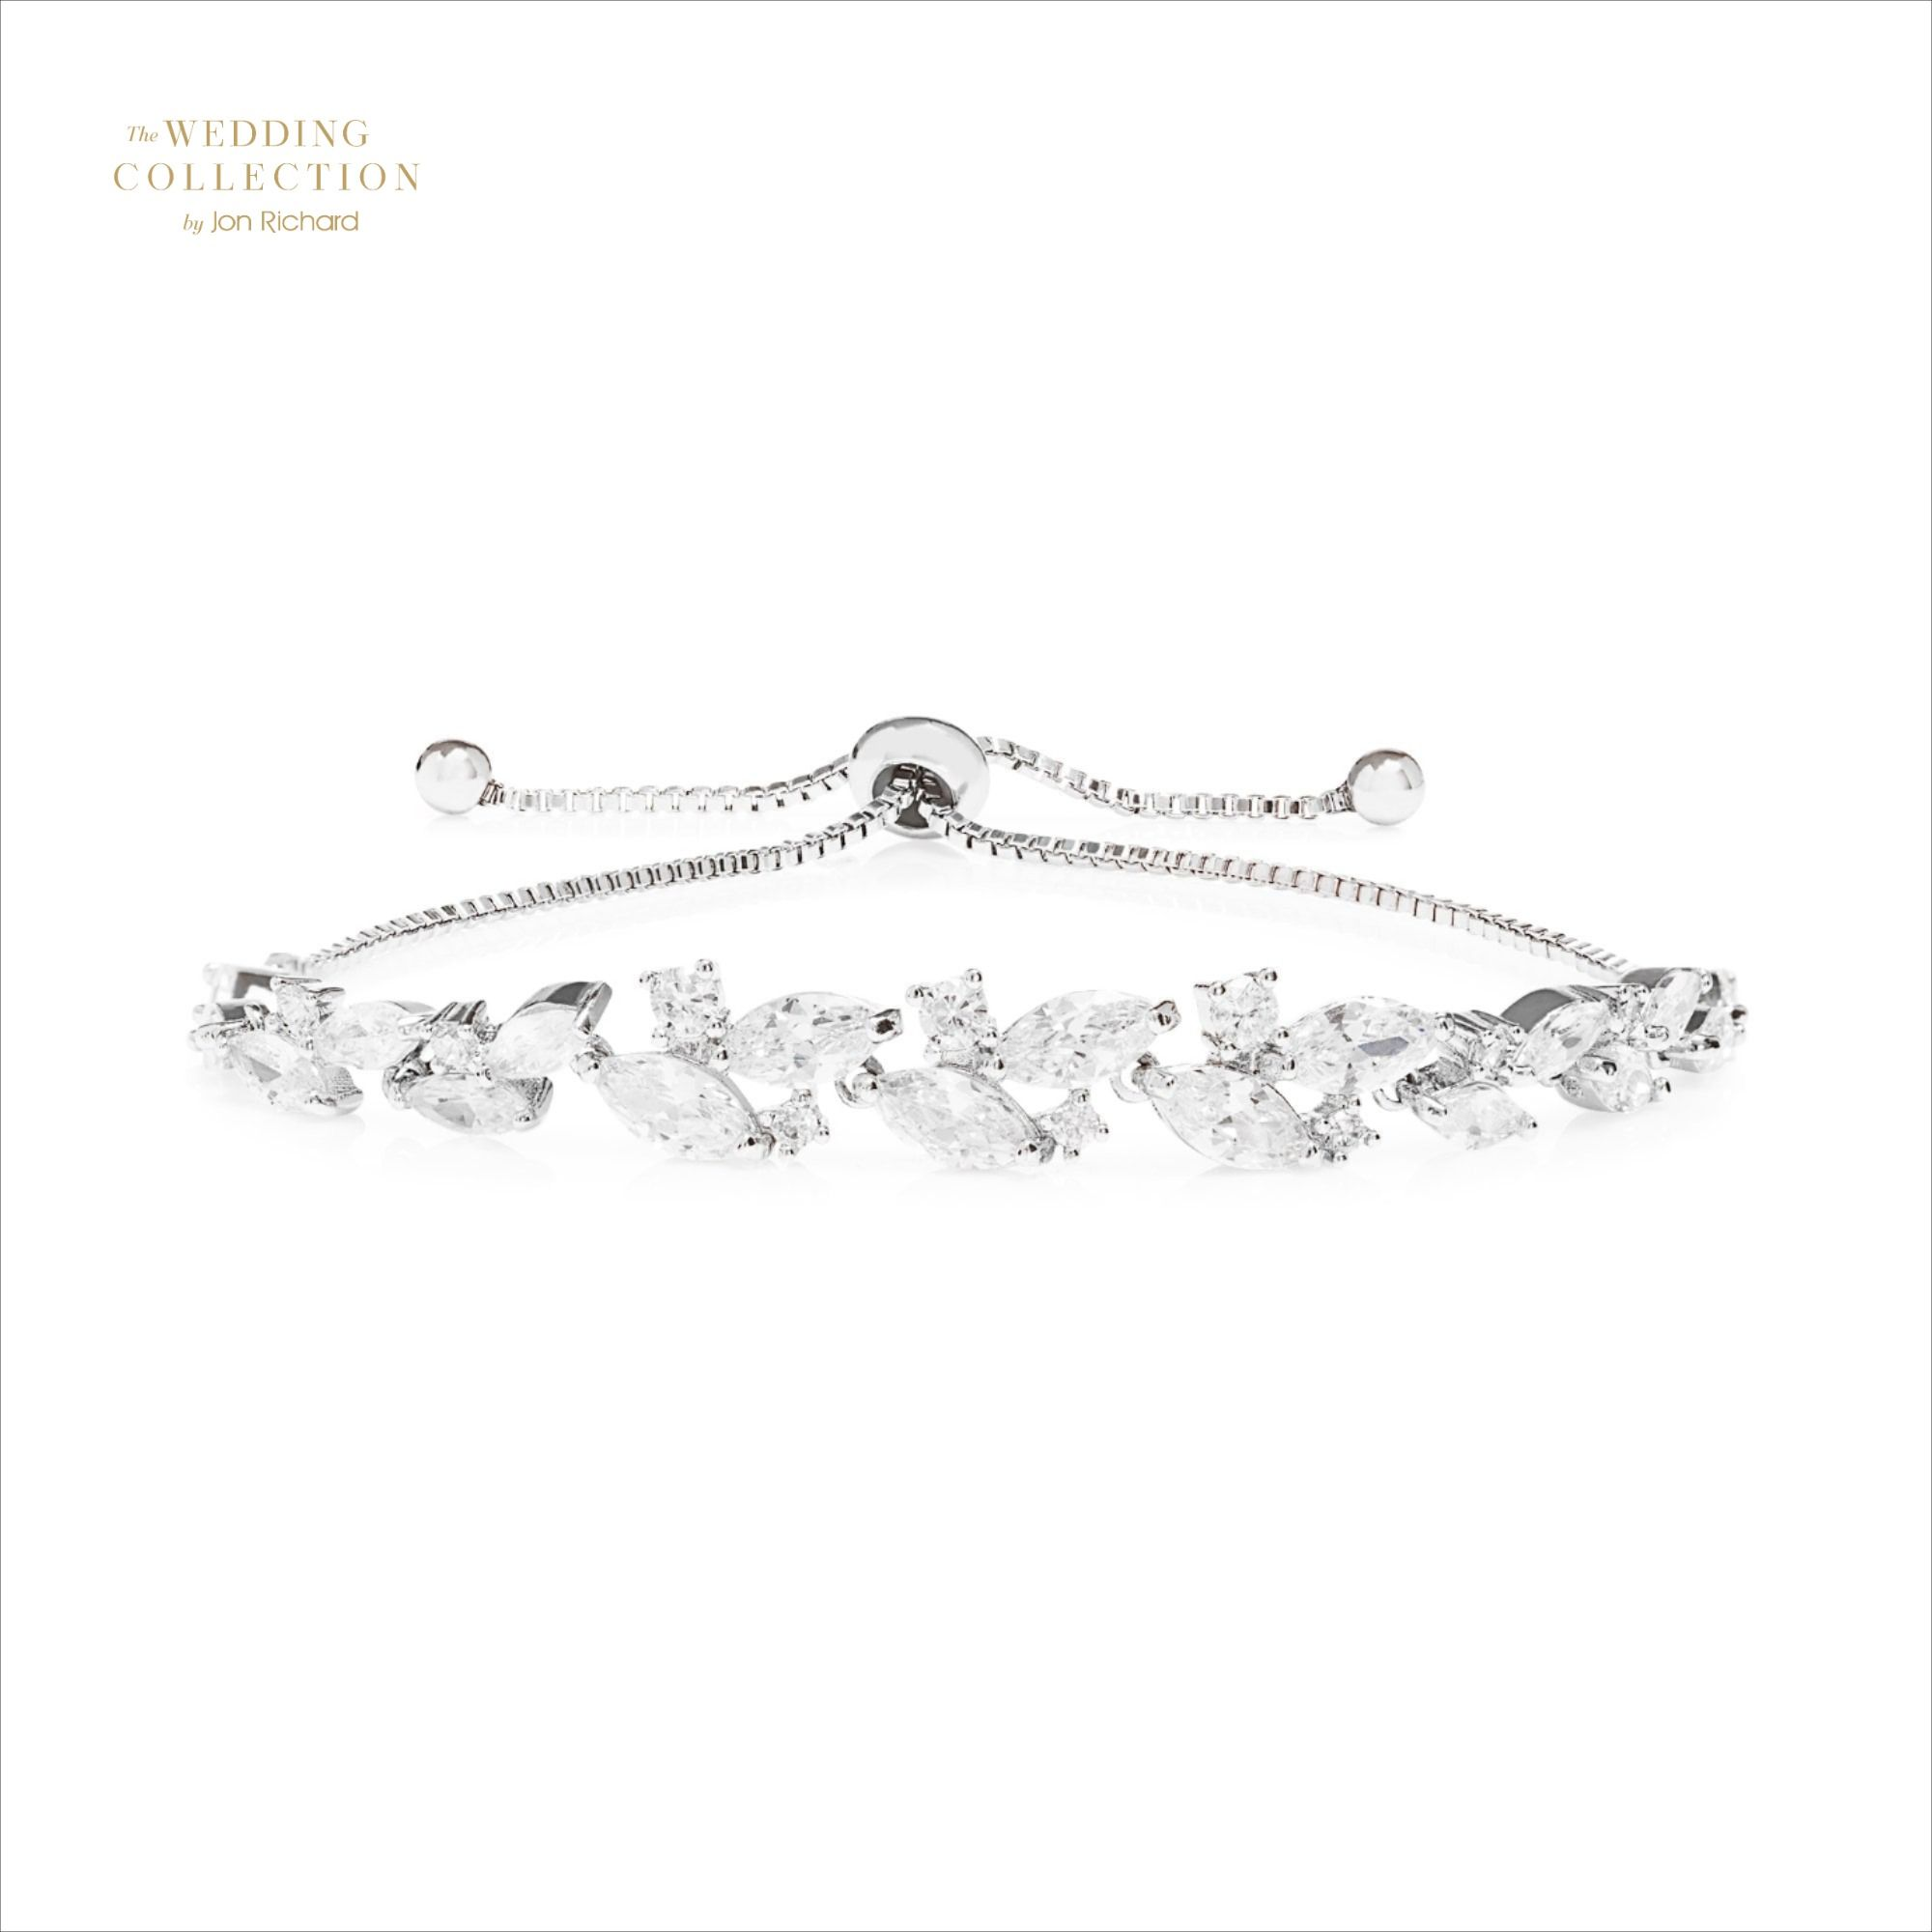 Romantic Bridal Jewellery Inspiration Romantic Bridal Style Perfect For A Country W In 2020 Bridal Jewellery Inspiration Wedding Jewelry Romantic Wedding Jewellery